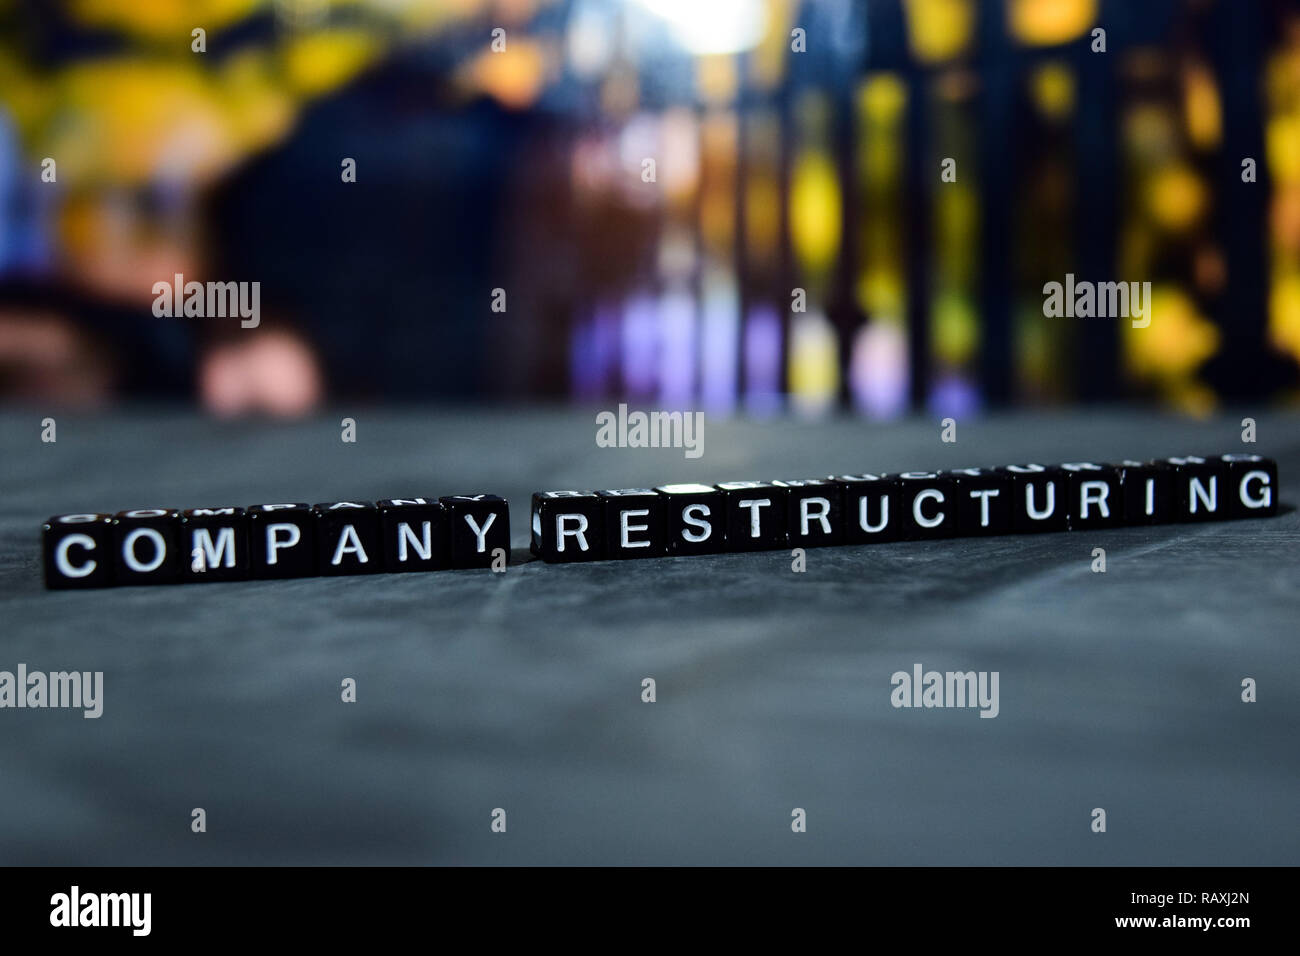 Company restructuring on wooden blocks. Business and finance concept. Cross processed image with bokeh background - Stock Image